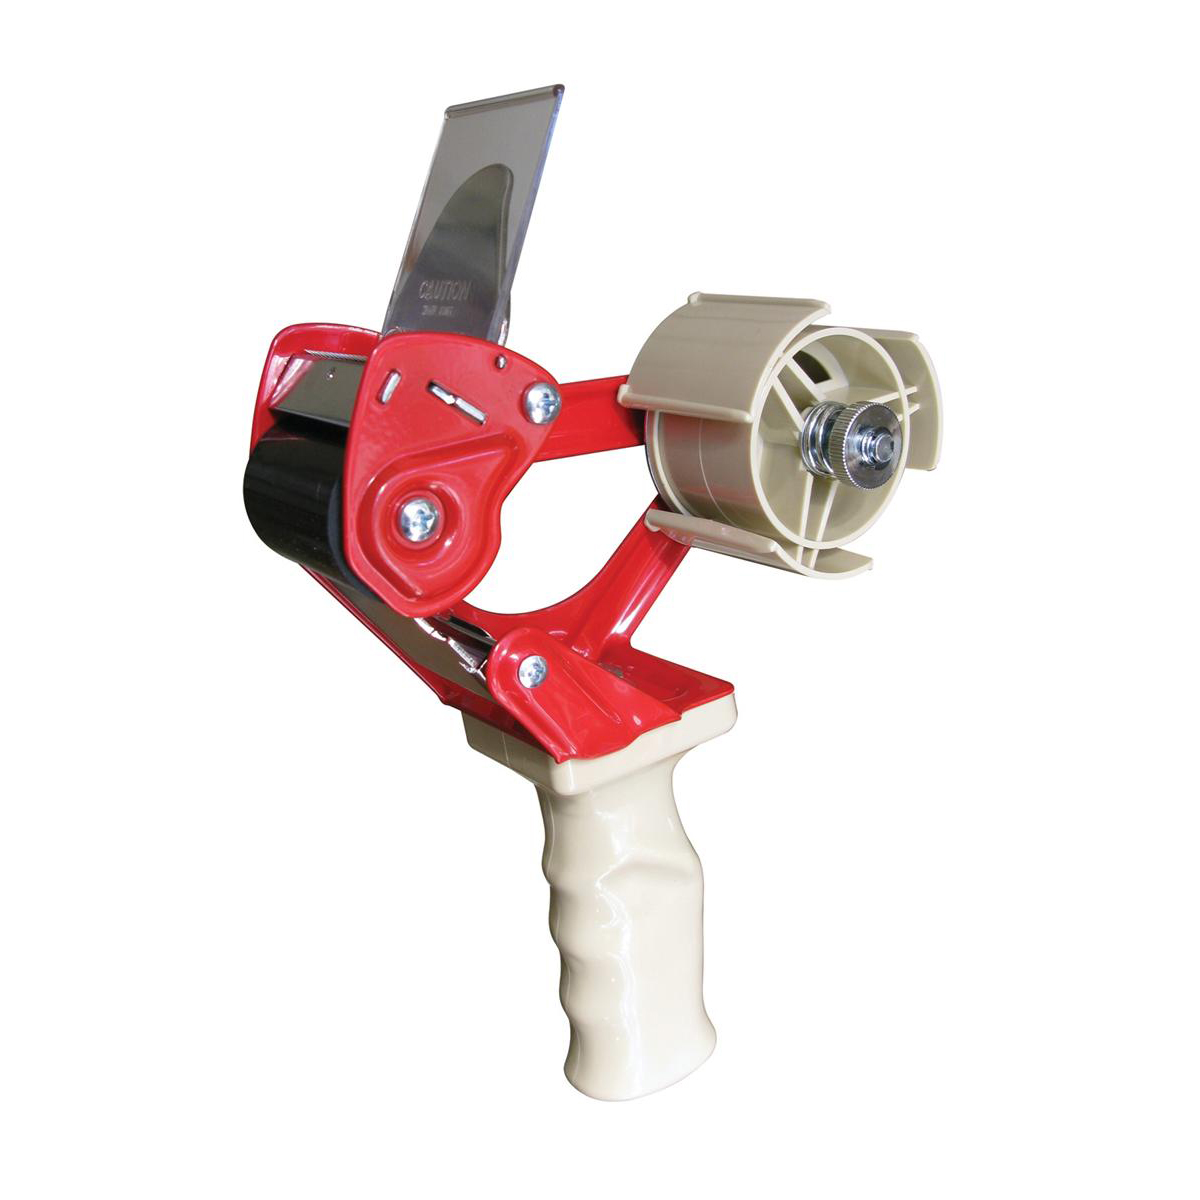 Tape dispensers Tape Dispenser Safety Hand Held with Retracting Blade for 50mm Tape